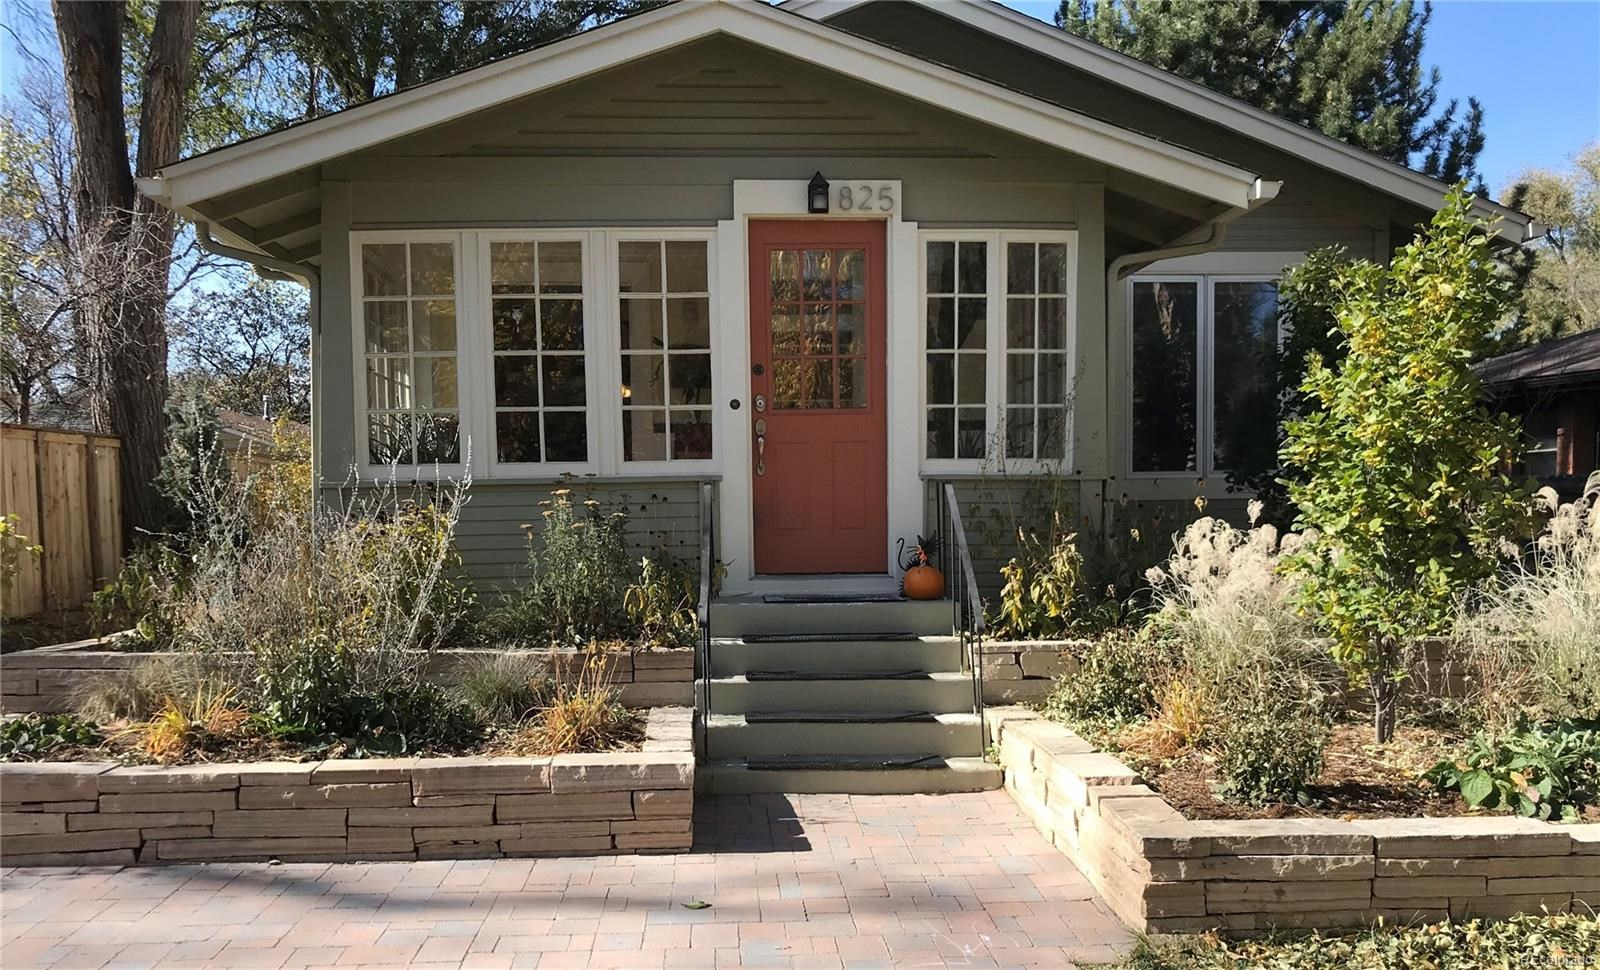 MLS# 8078469 - 1 - 825 Smith Street, Fort Collins, CO 80524